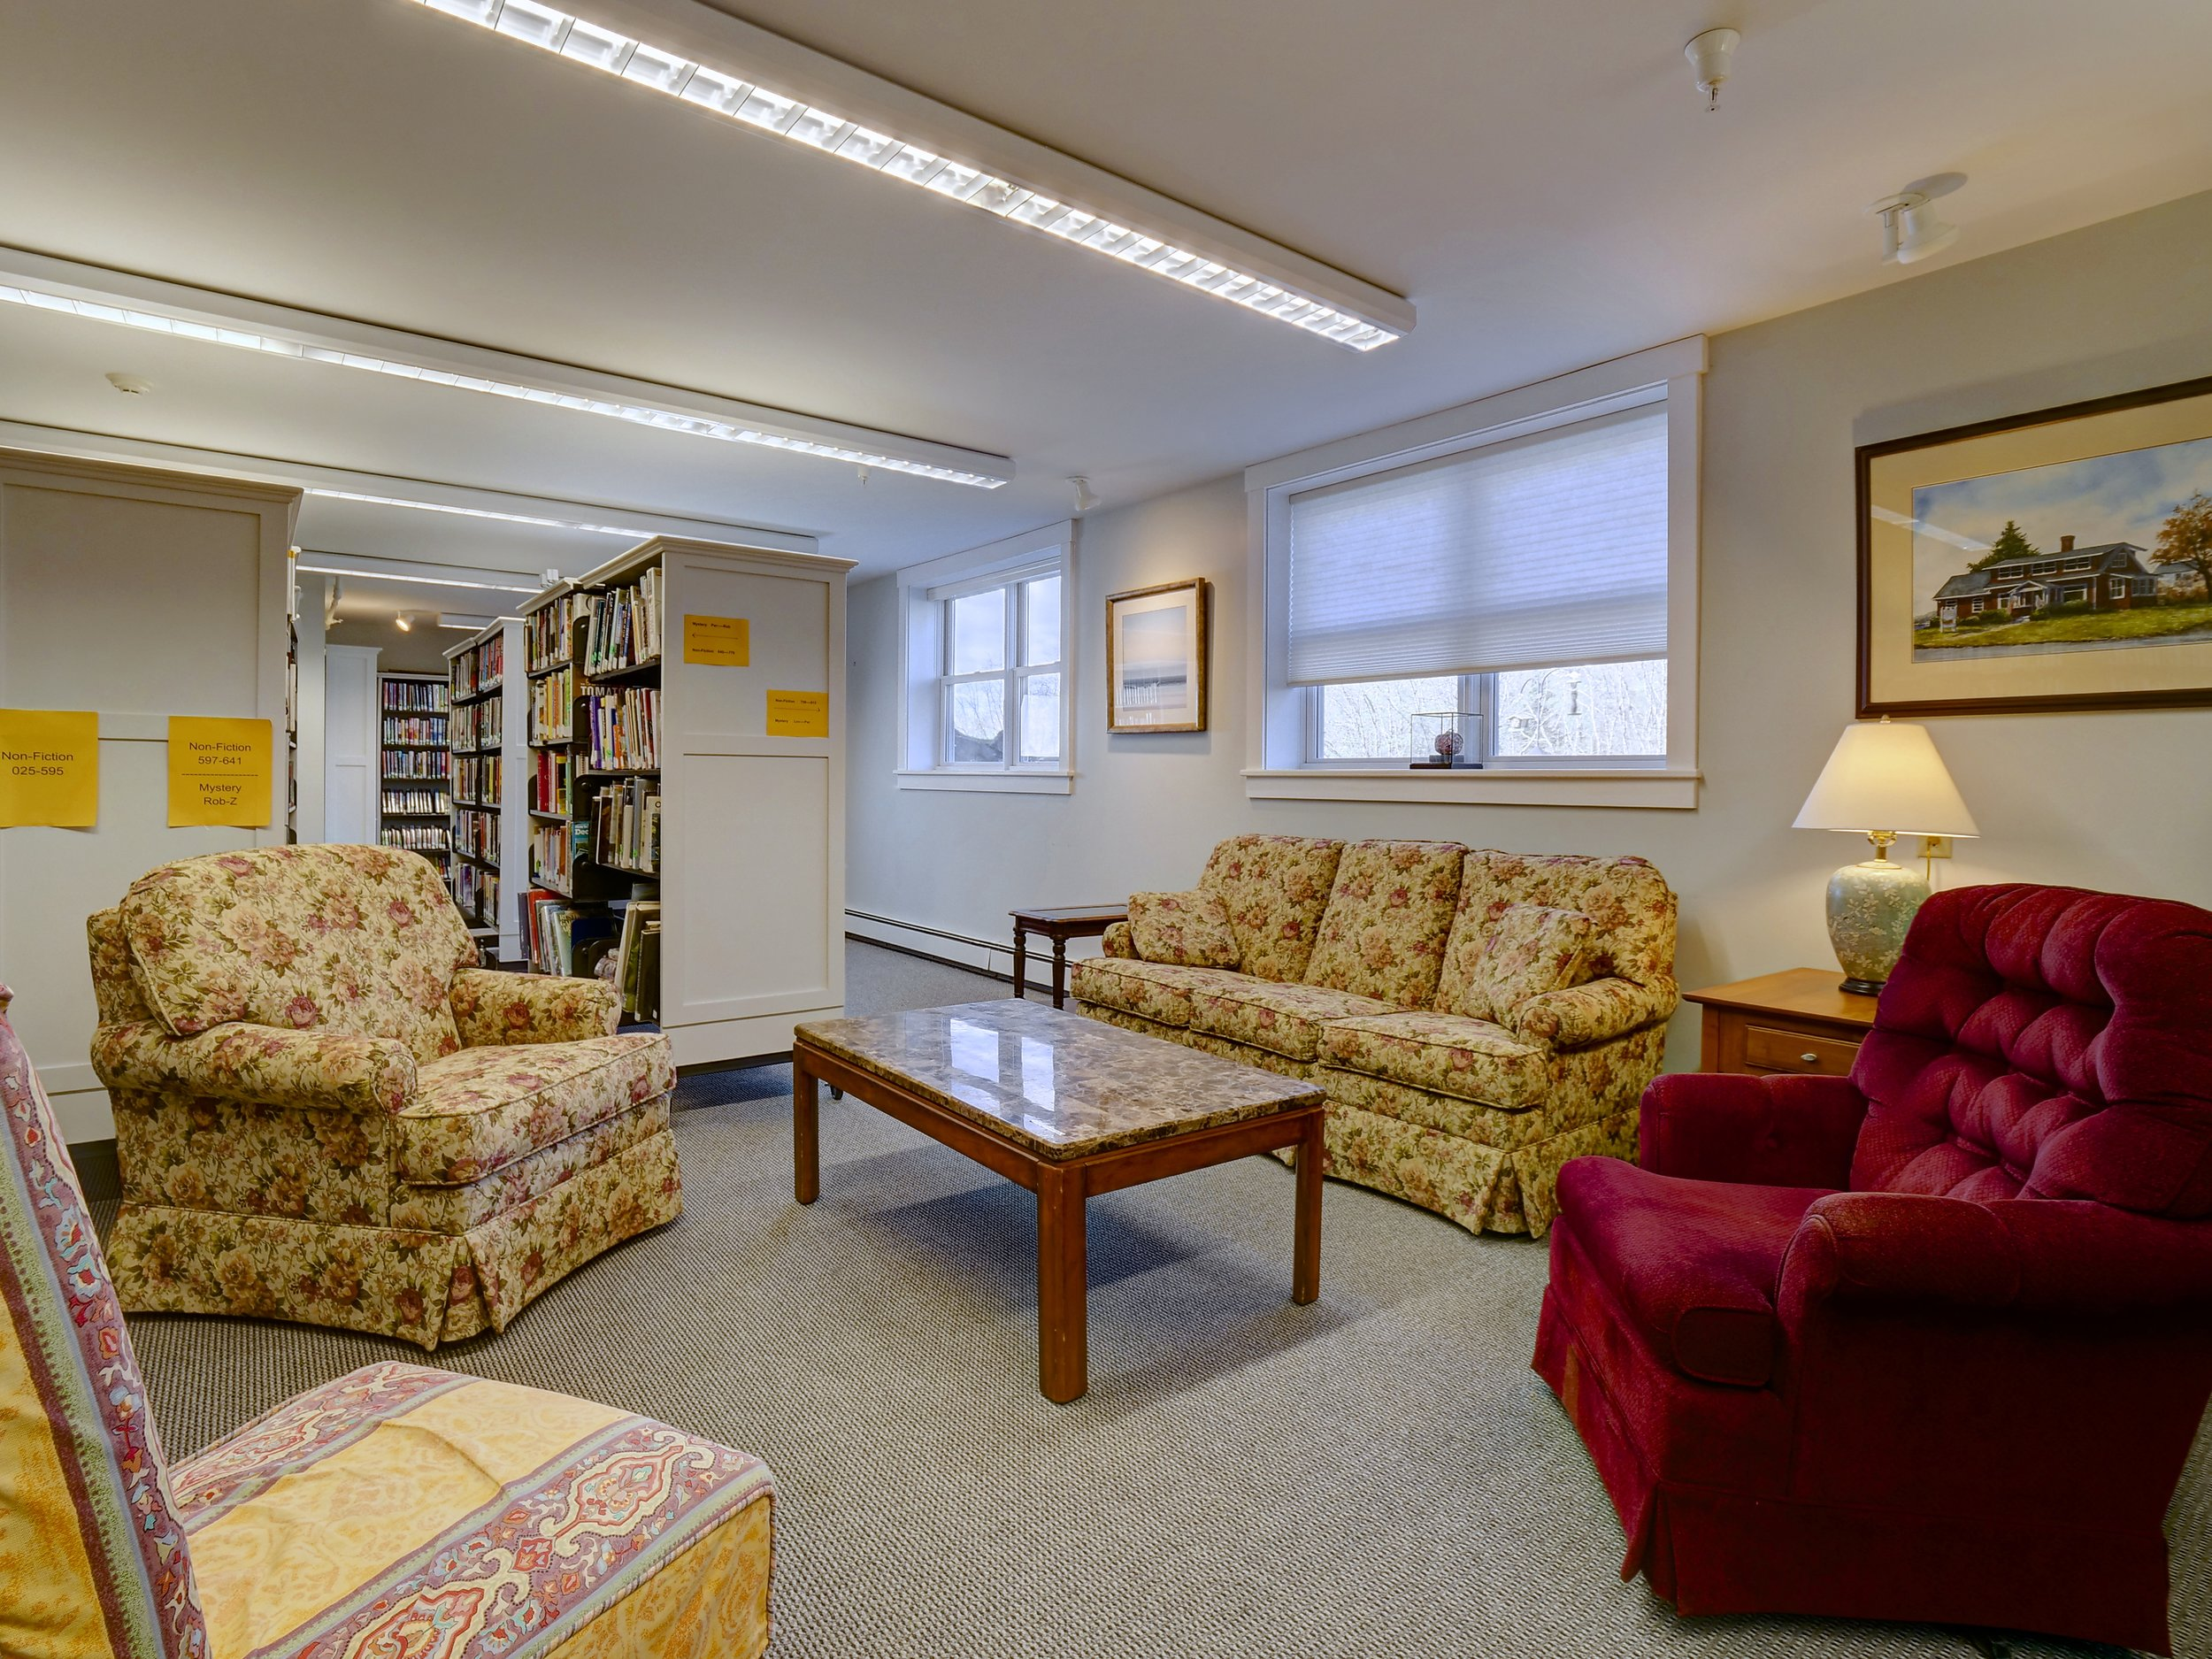 Cozy Gathering Place among the Adult Stacks, including Mysteries, Biographies, Fiction, and Non-Fiction.